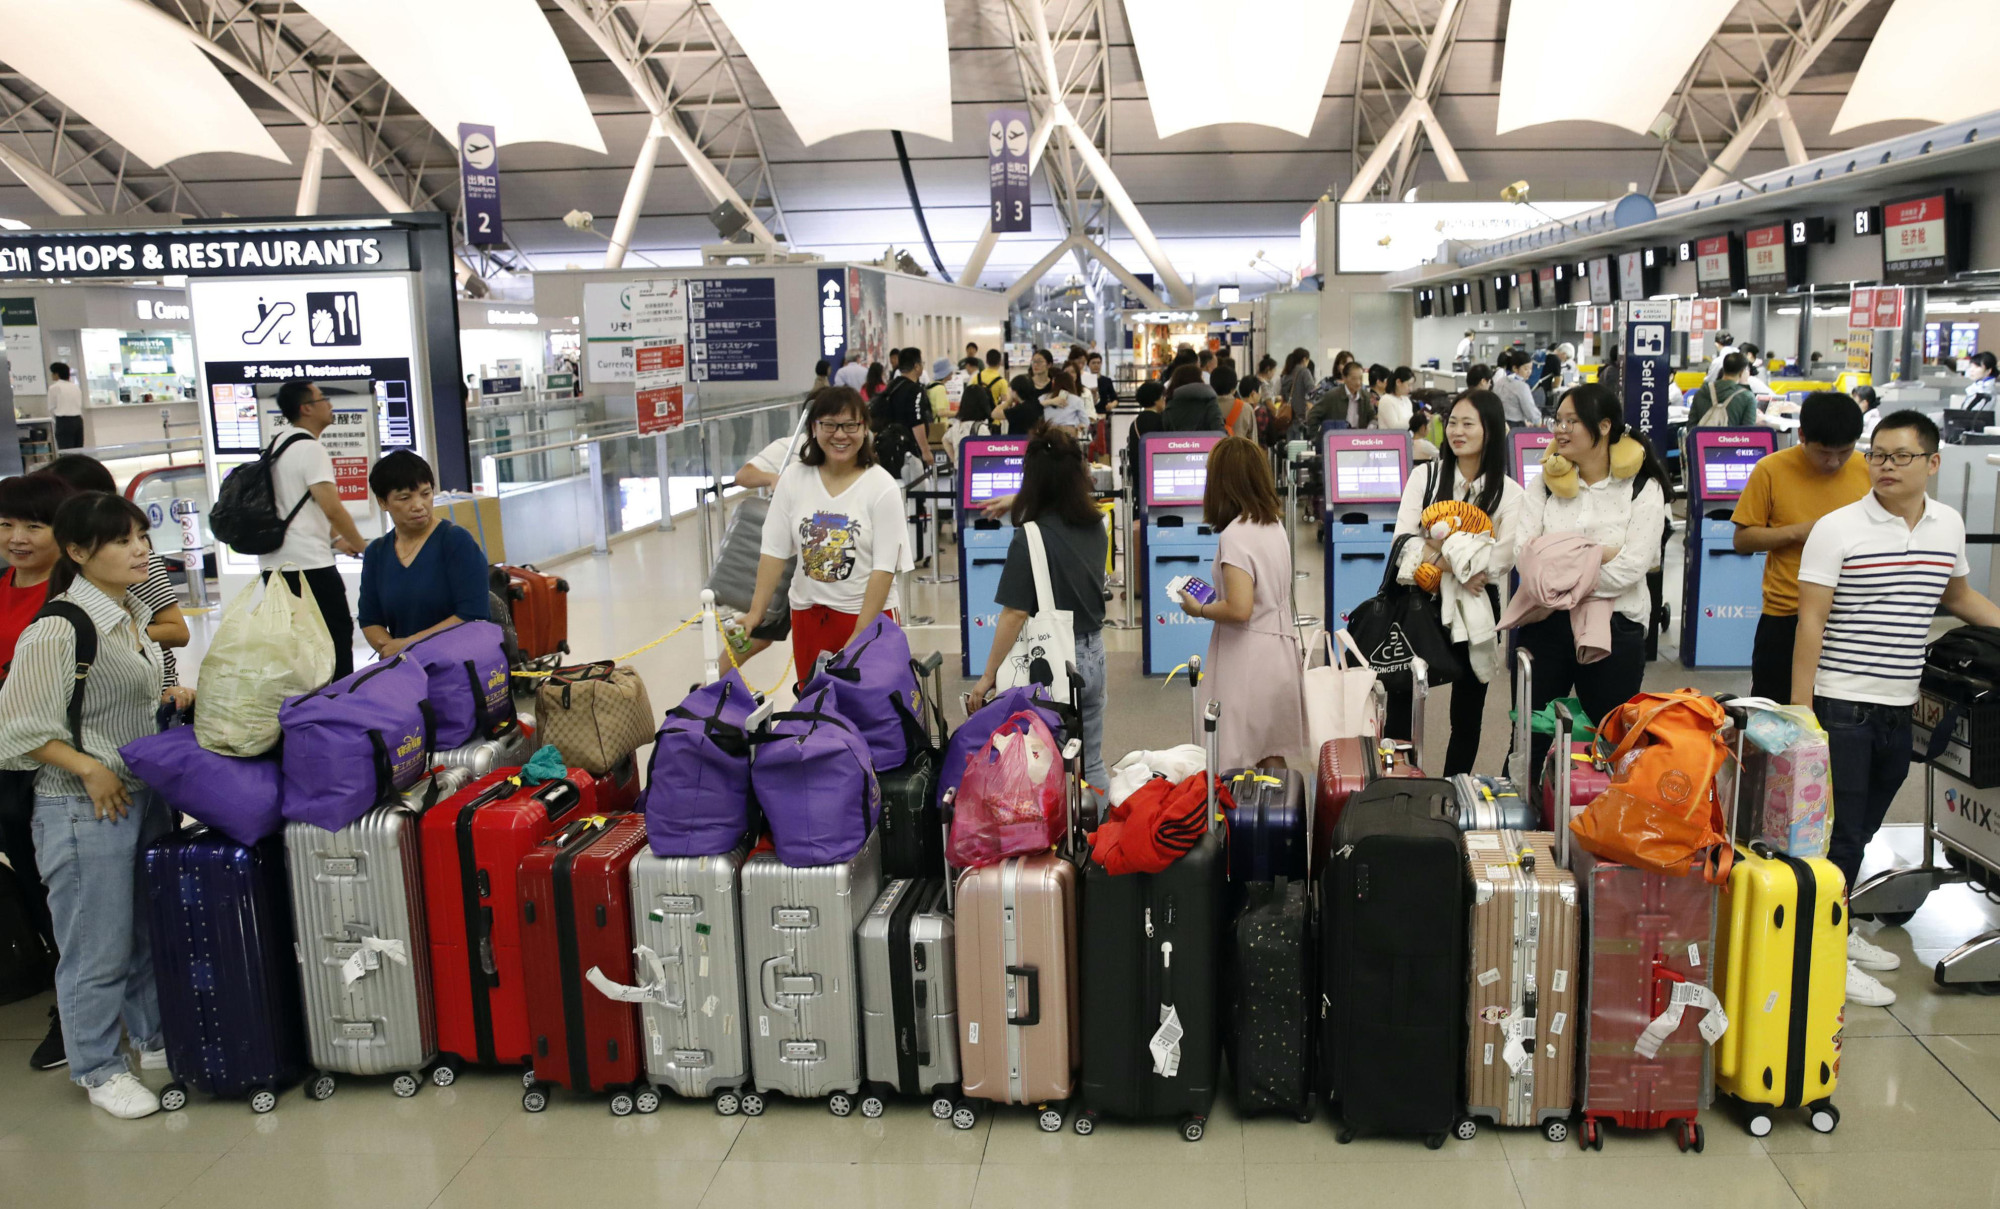 Bag Shops Hands Free Travel Approaches Reality In Japan As Firms Tap Demand